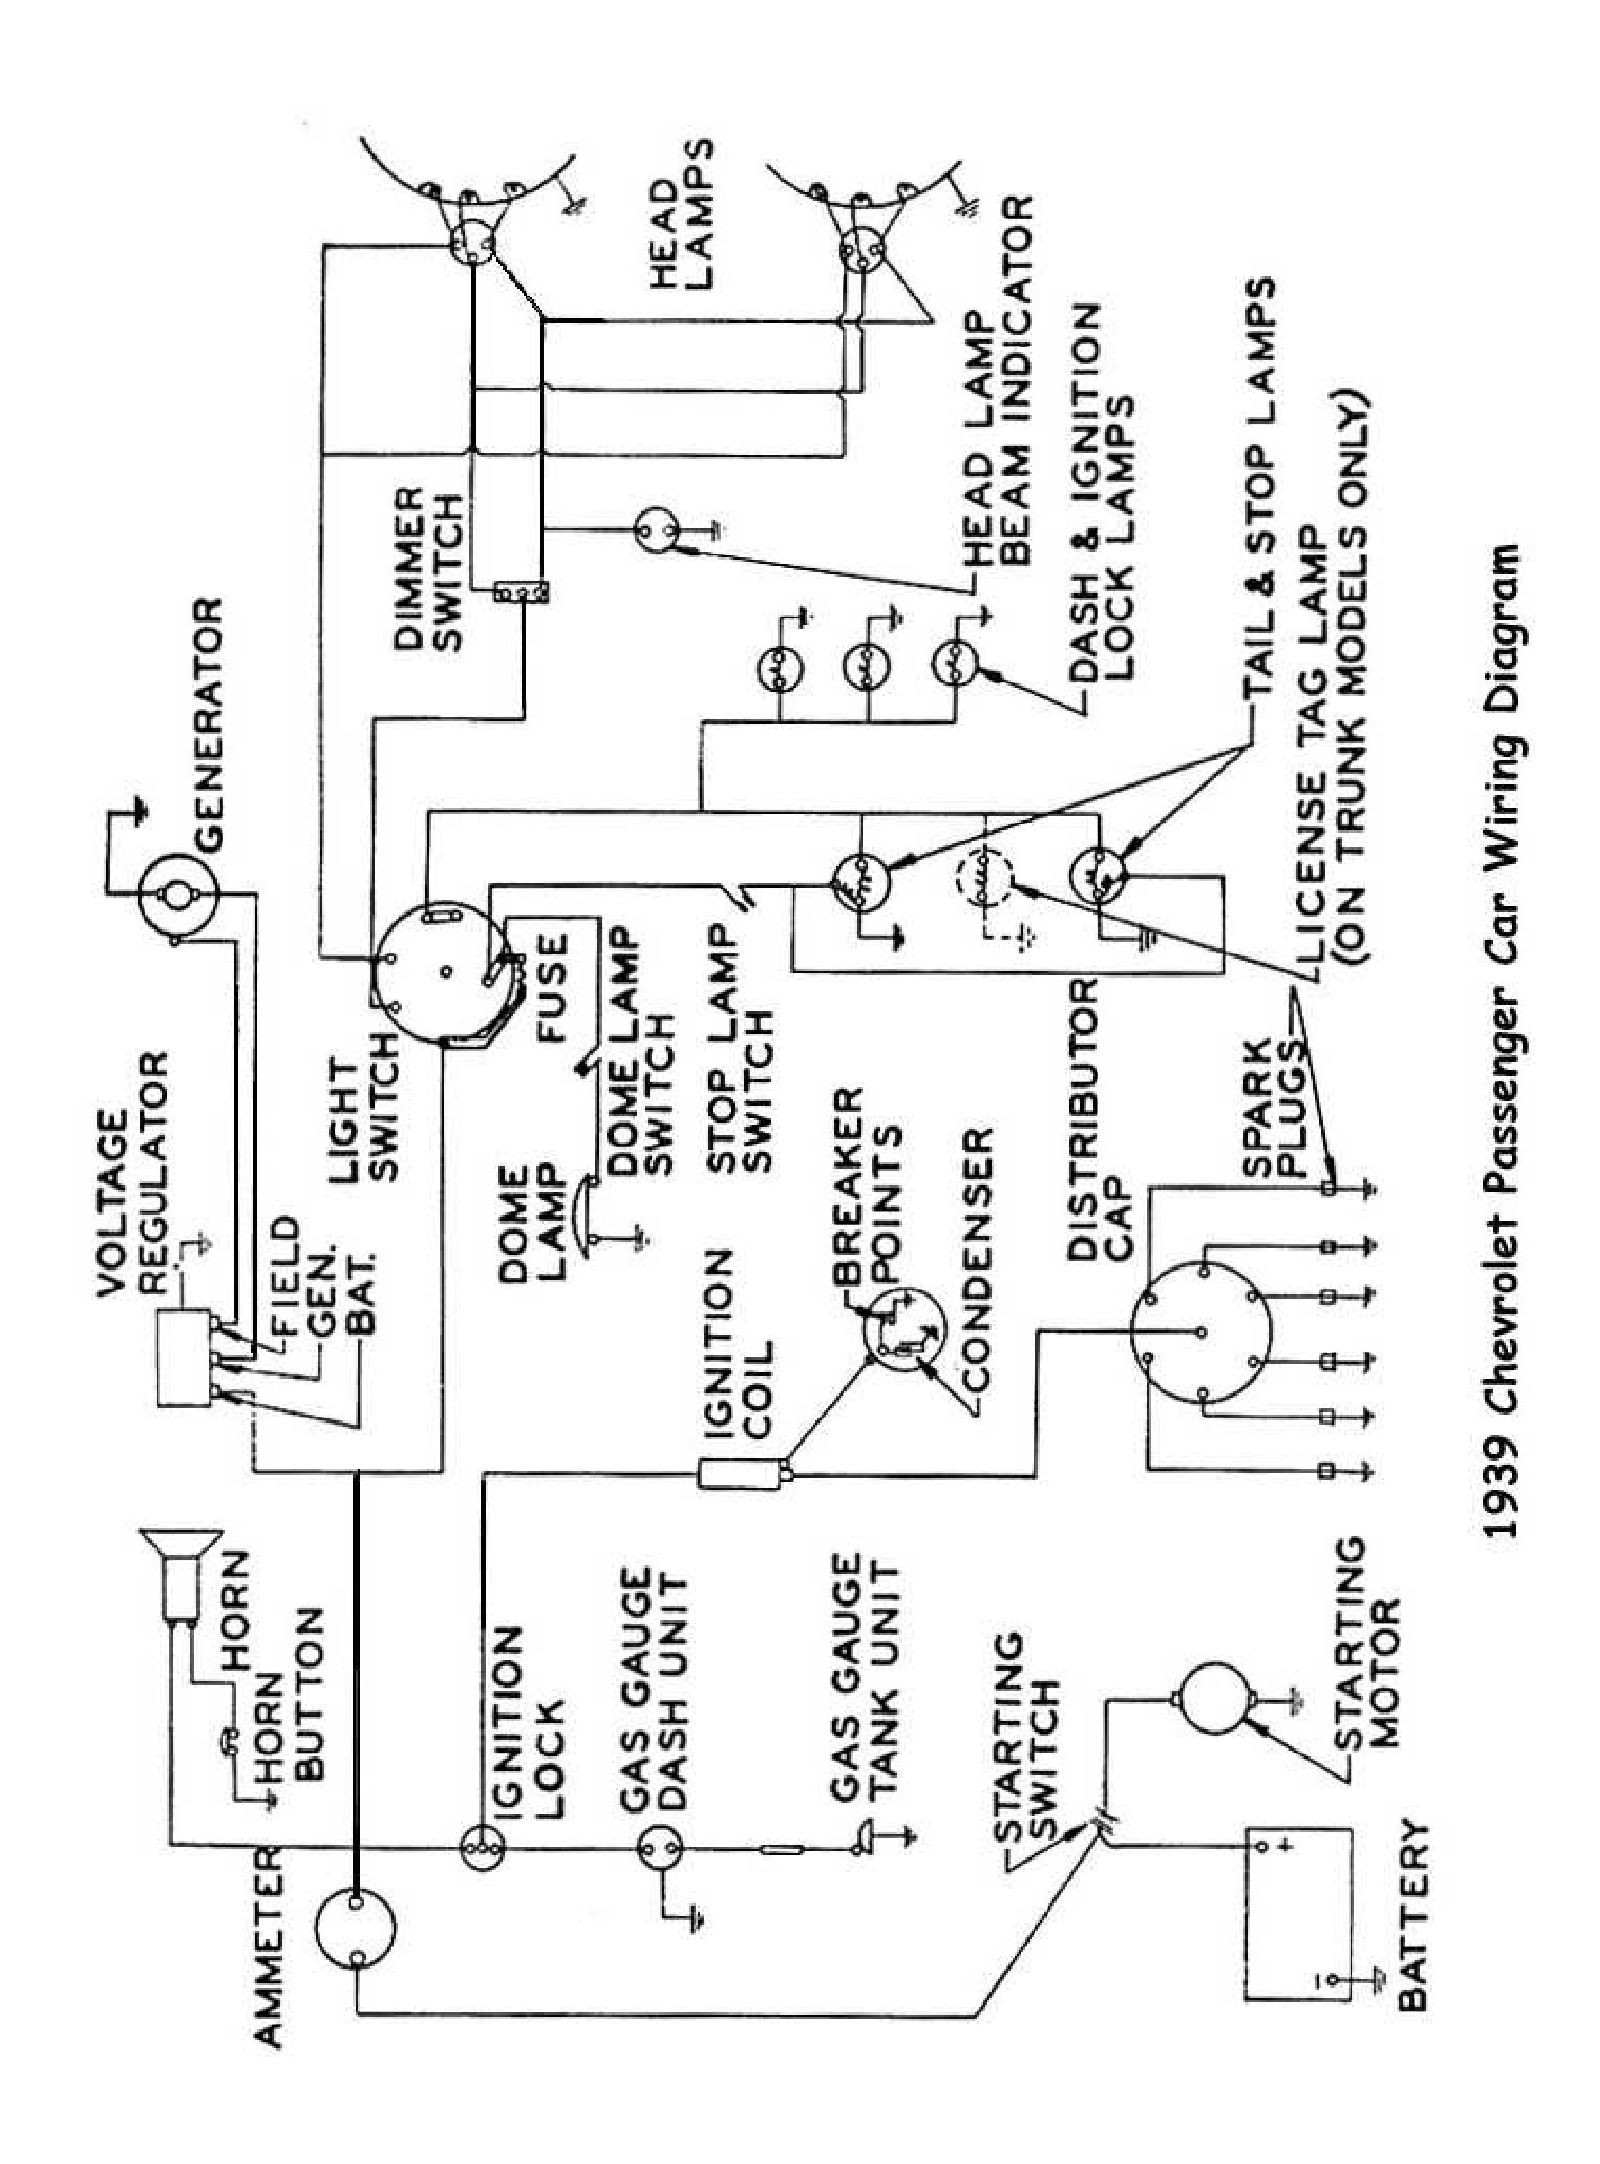 WRG-8370] Harley Ignition Wiring Diagram With Car on